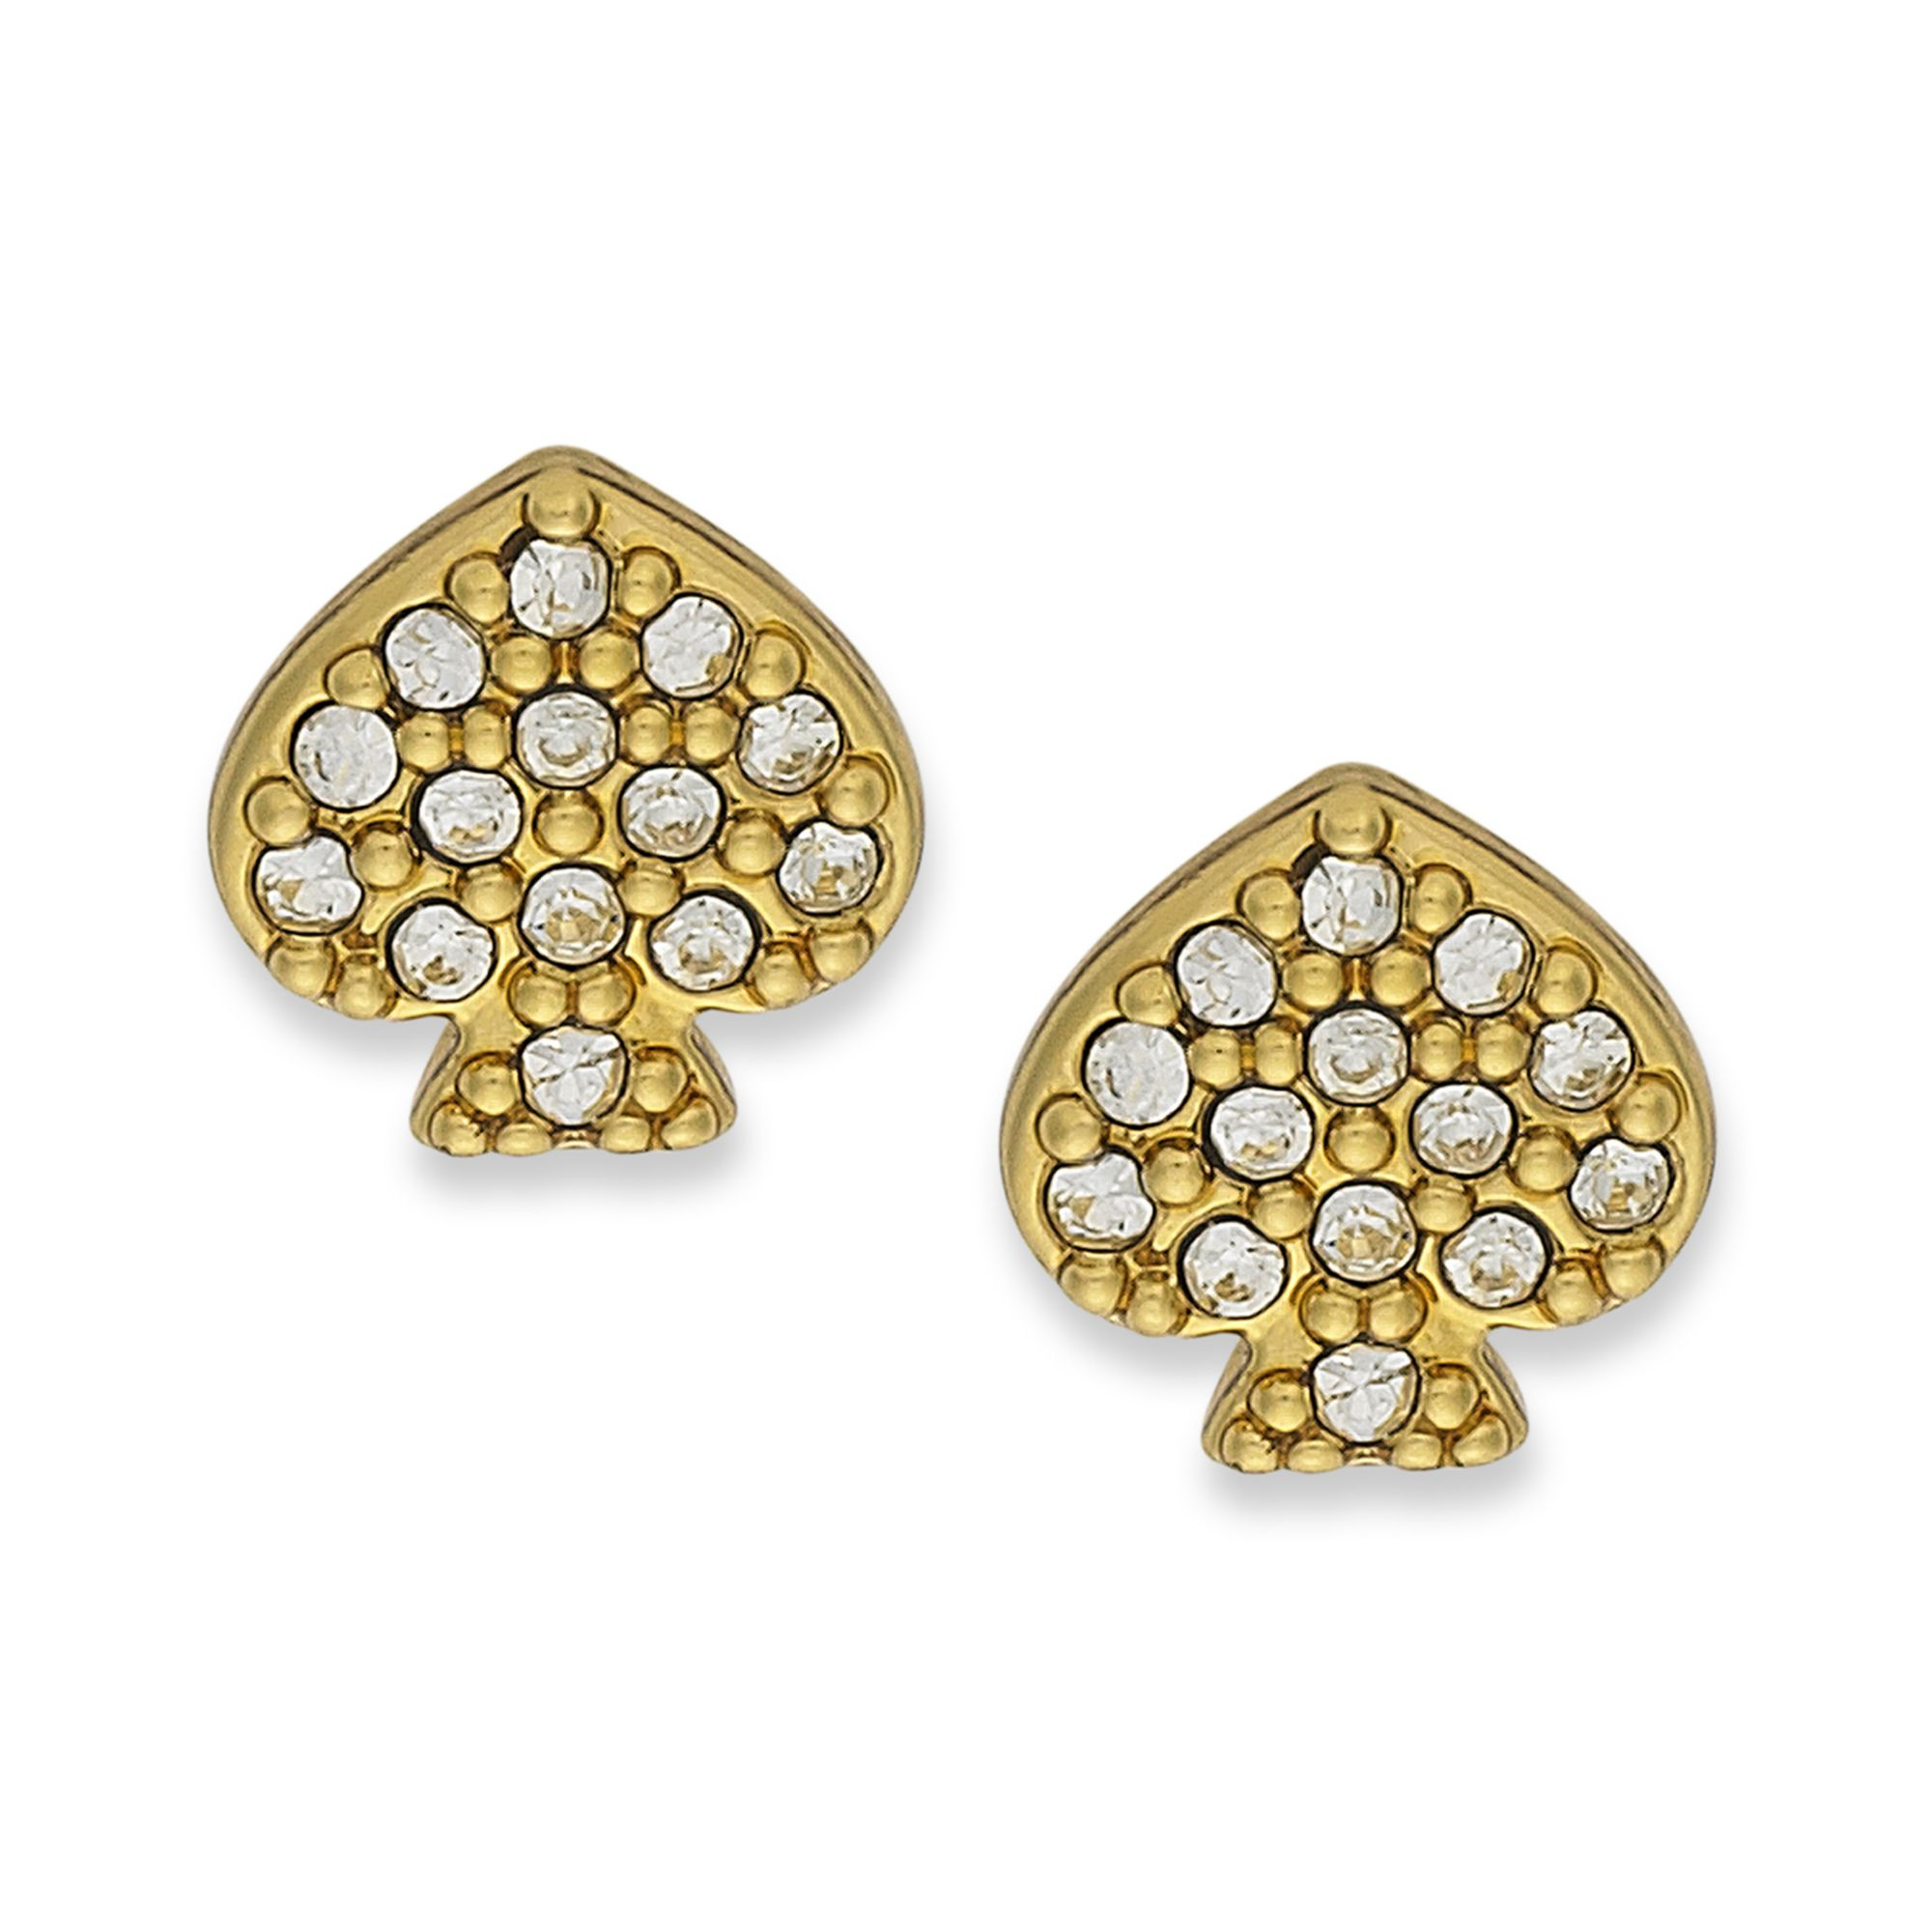 kate spade new york earrings 12k goldplated